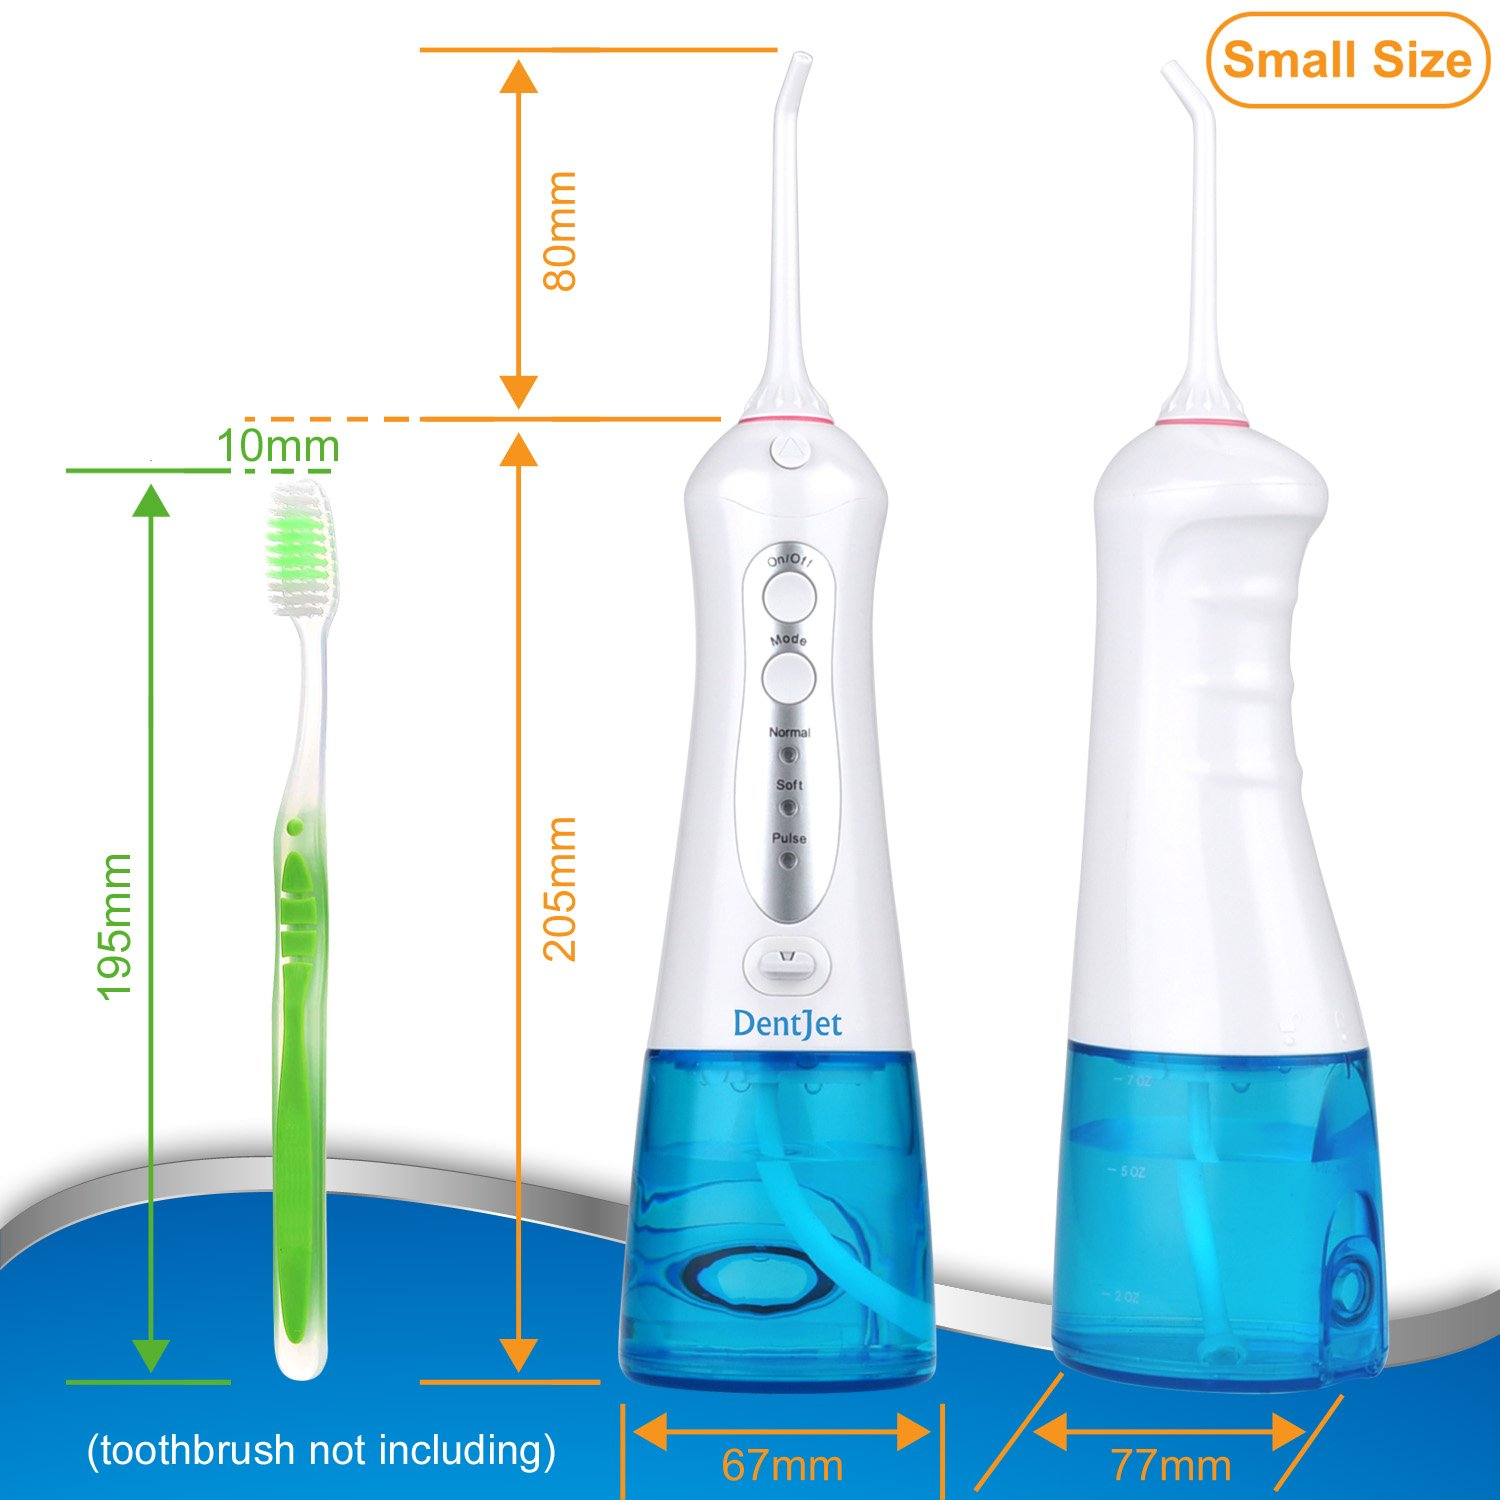 Oral Irrigator Cordless Water Flosser Rechargeable, DentJet 200ml Waterproof Water Pick for Teeth Portable Teeth Cleaning Kit with 3 Modes for Travel and Household (DJ-159 New Design)